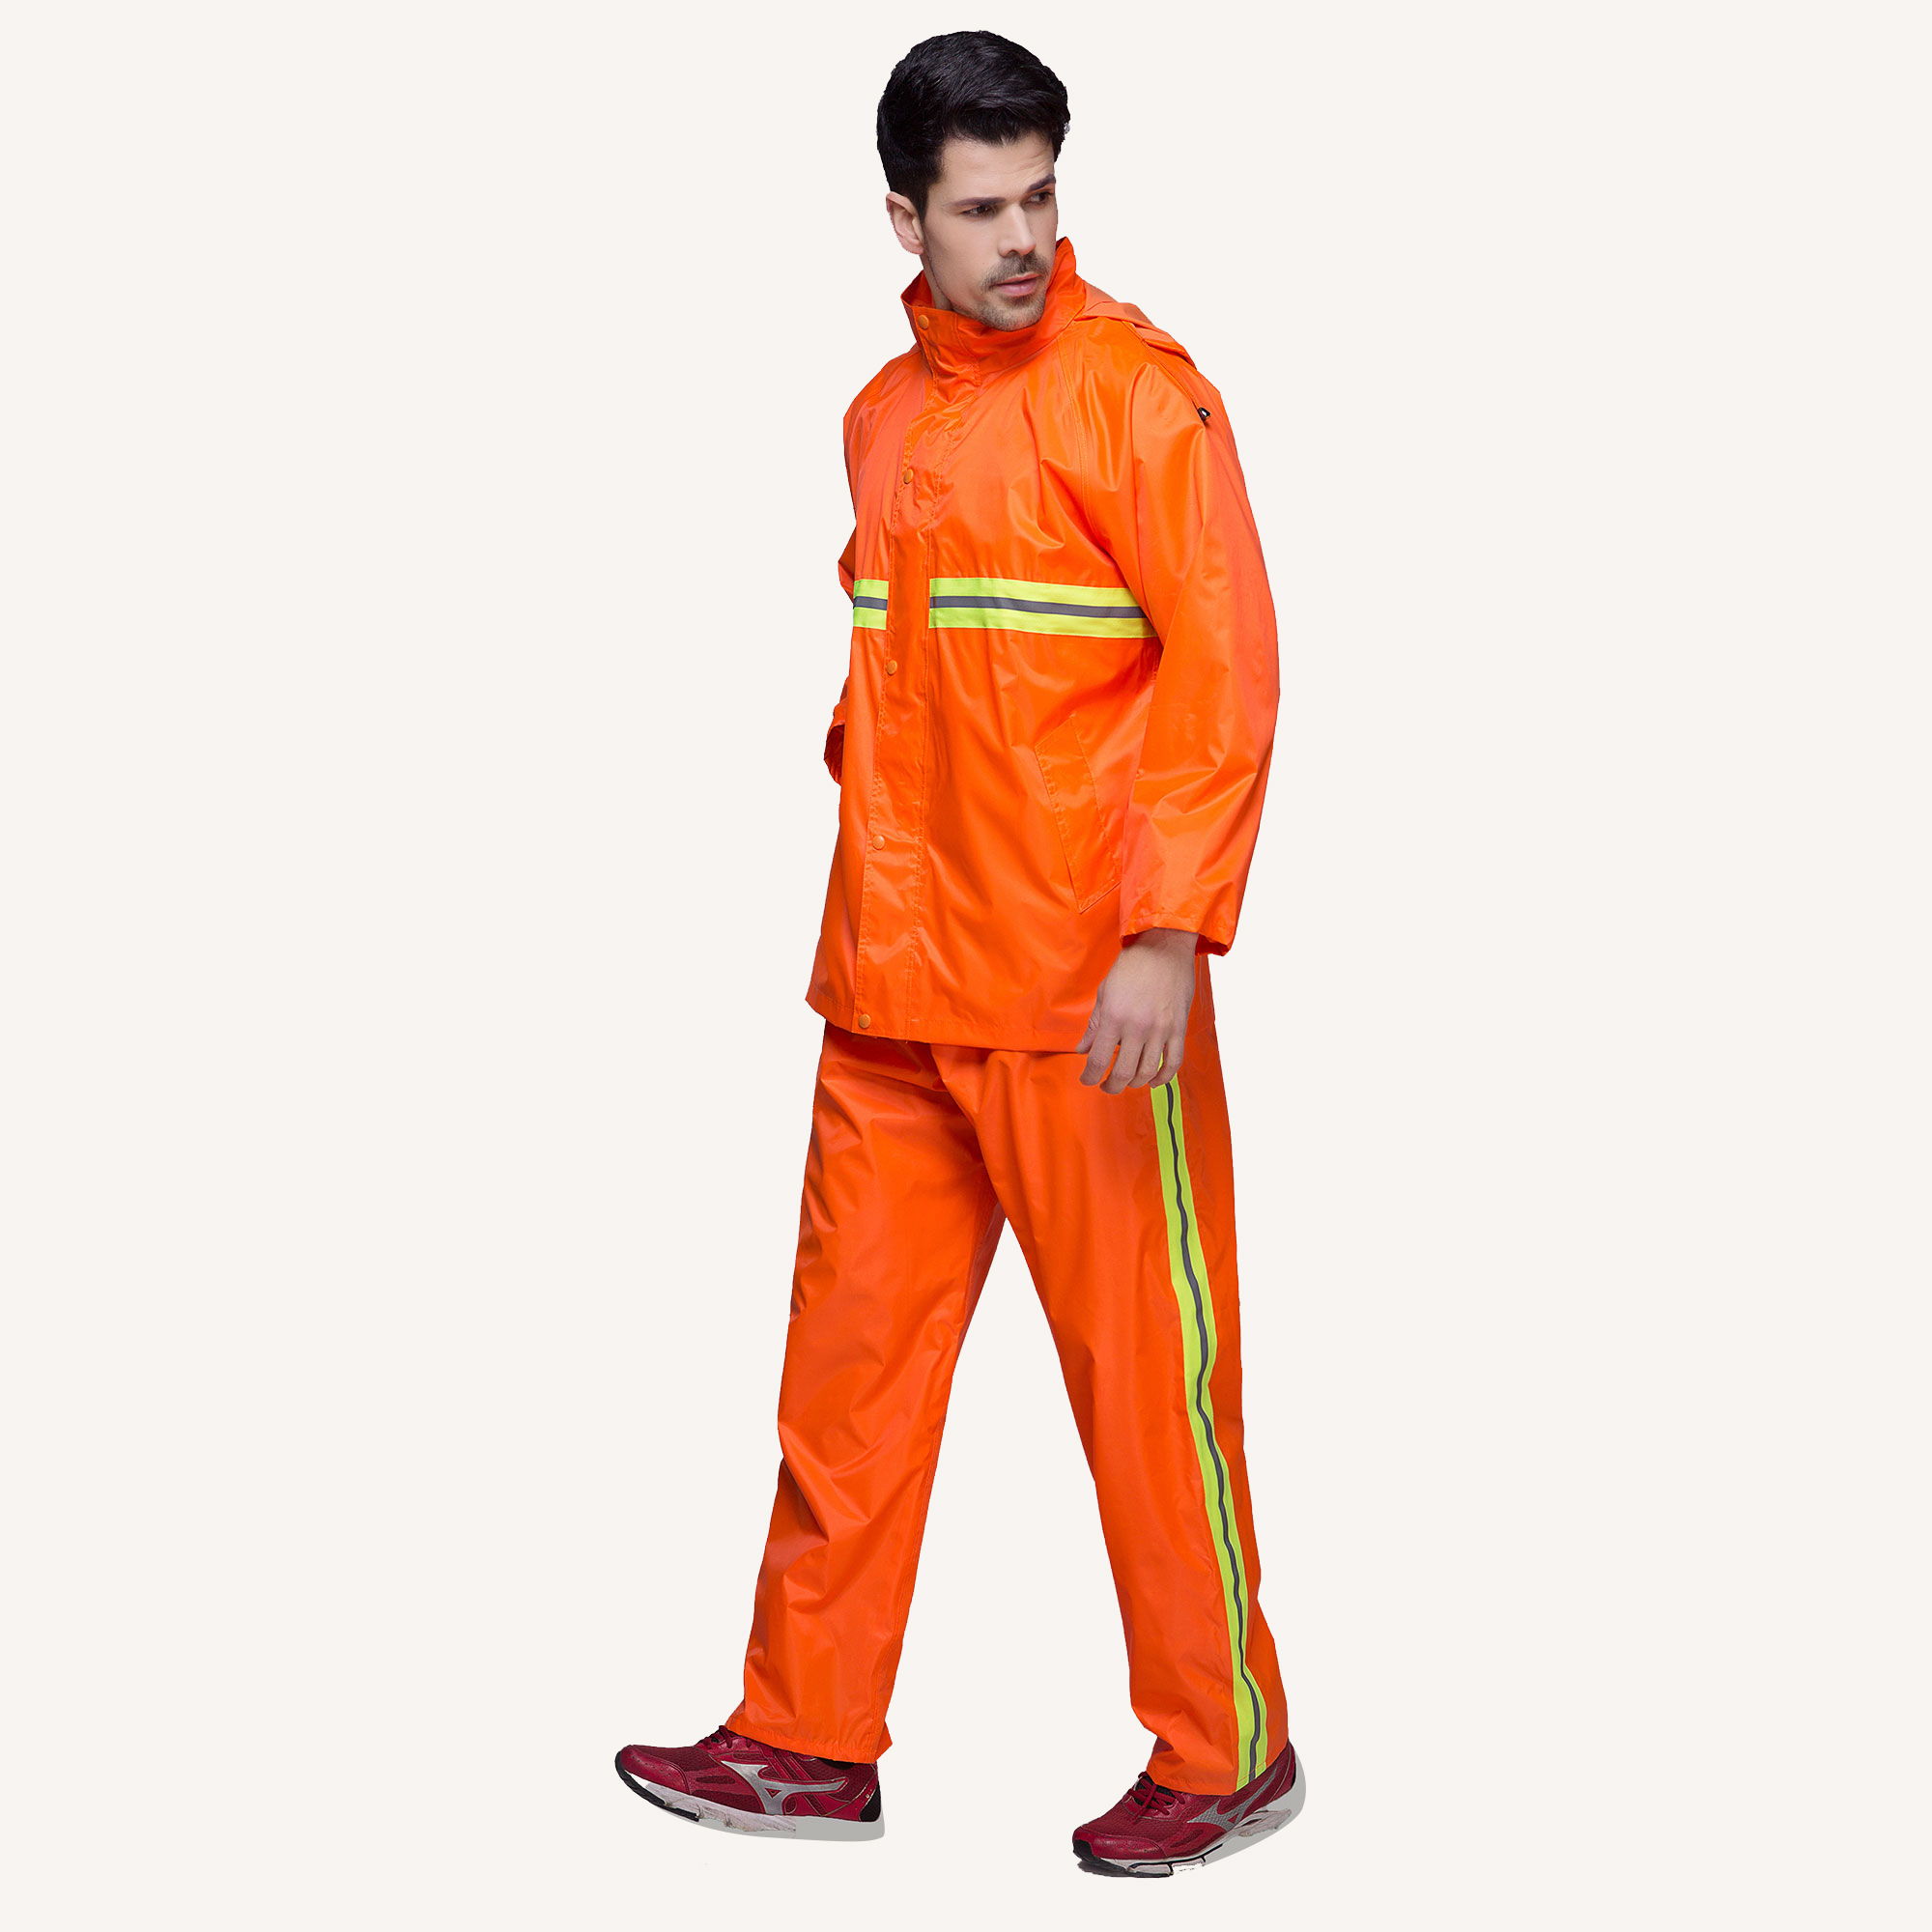 6957 Safety Waterproof Suit